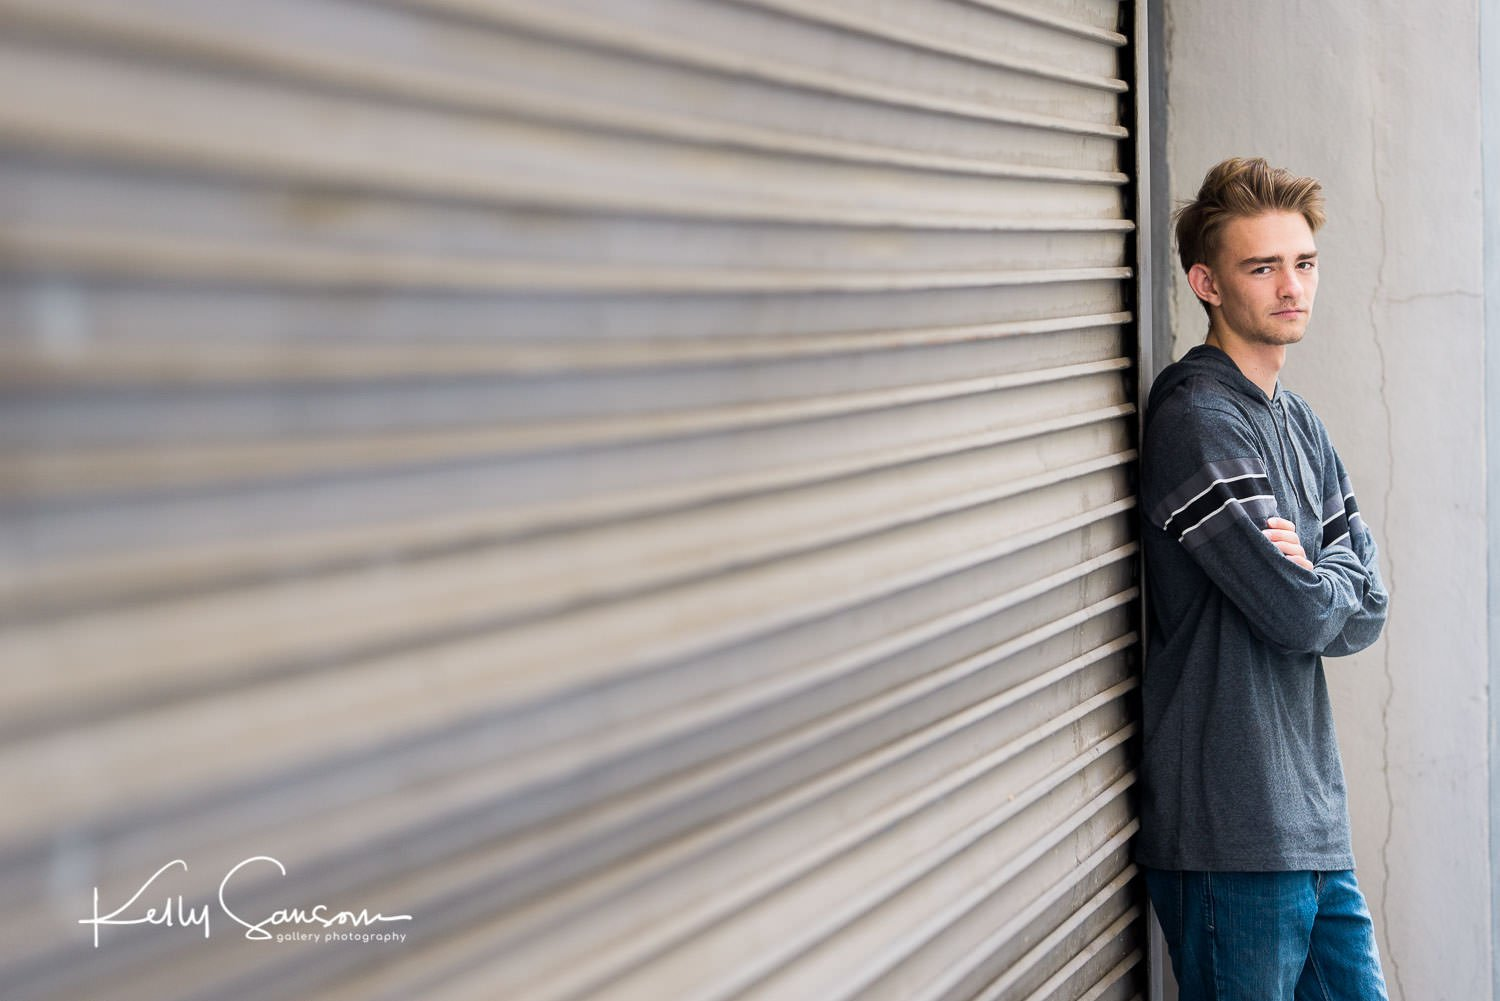 A high school senior stands by a garage door for Salt Lake City senior photography.